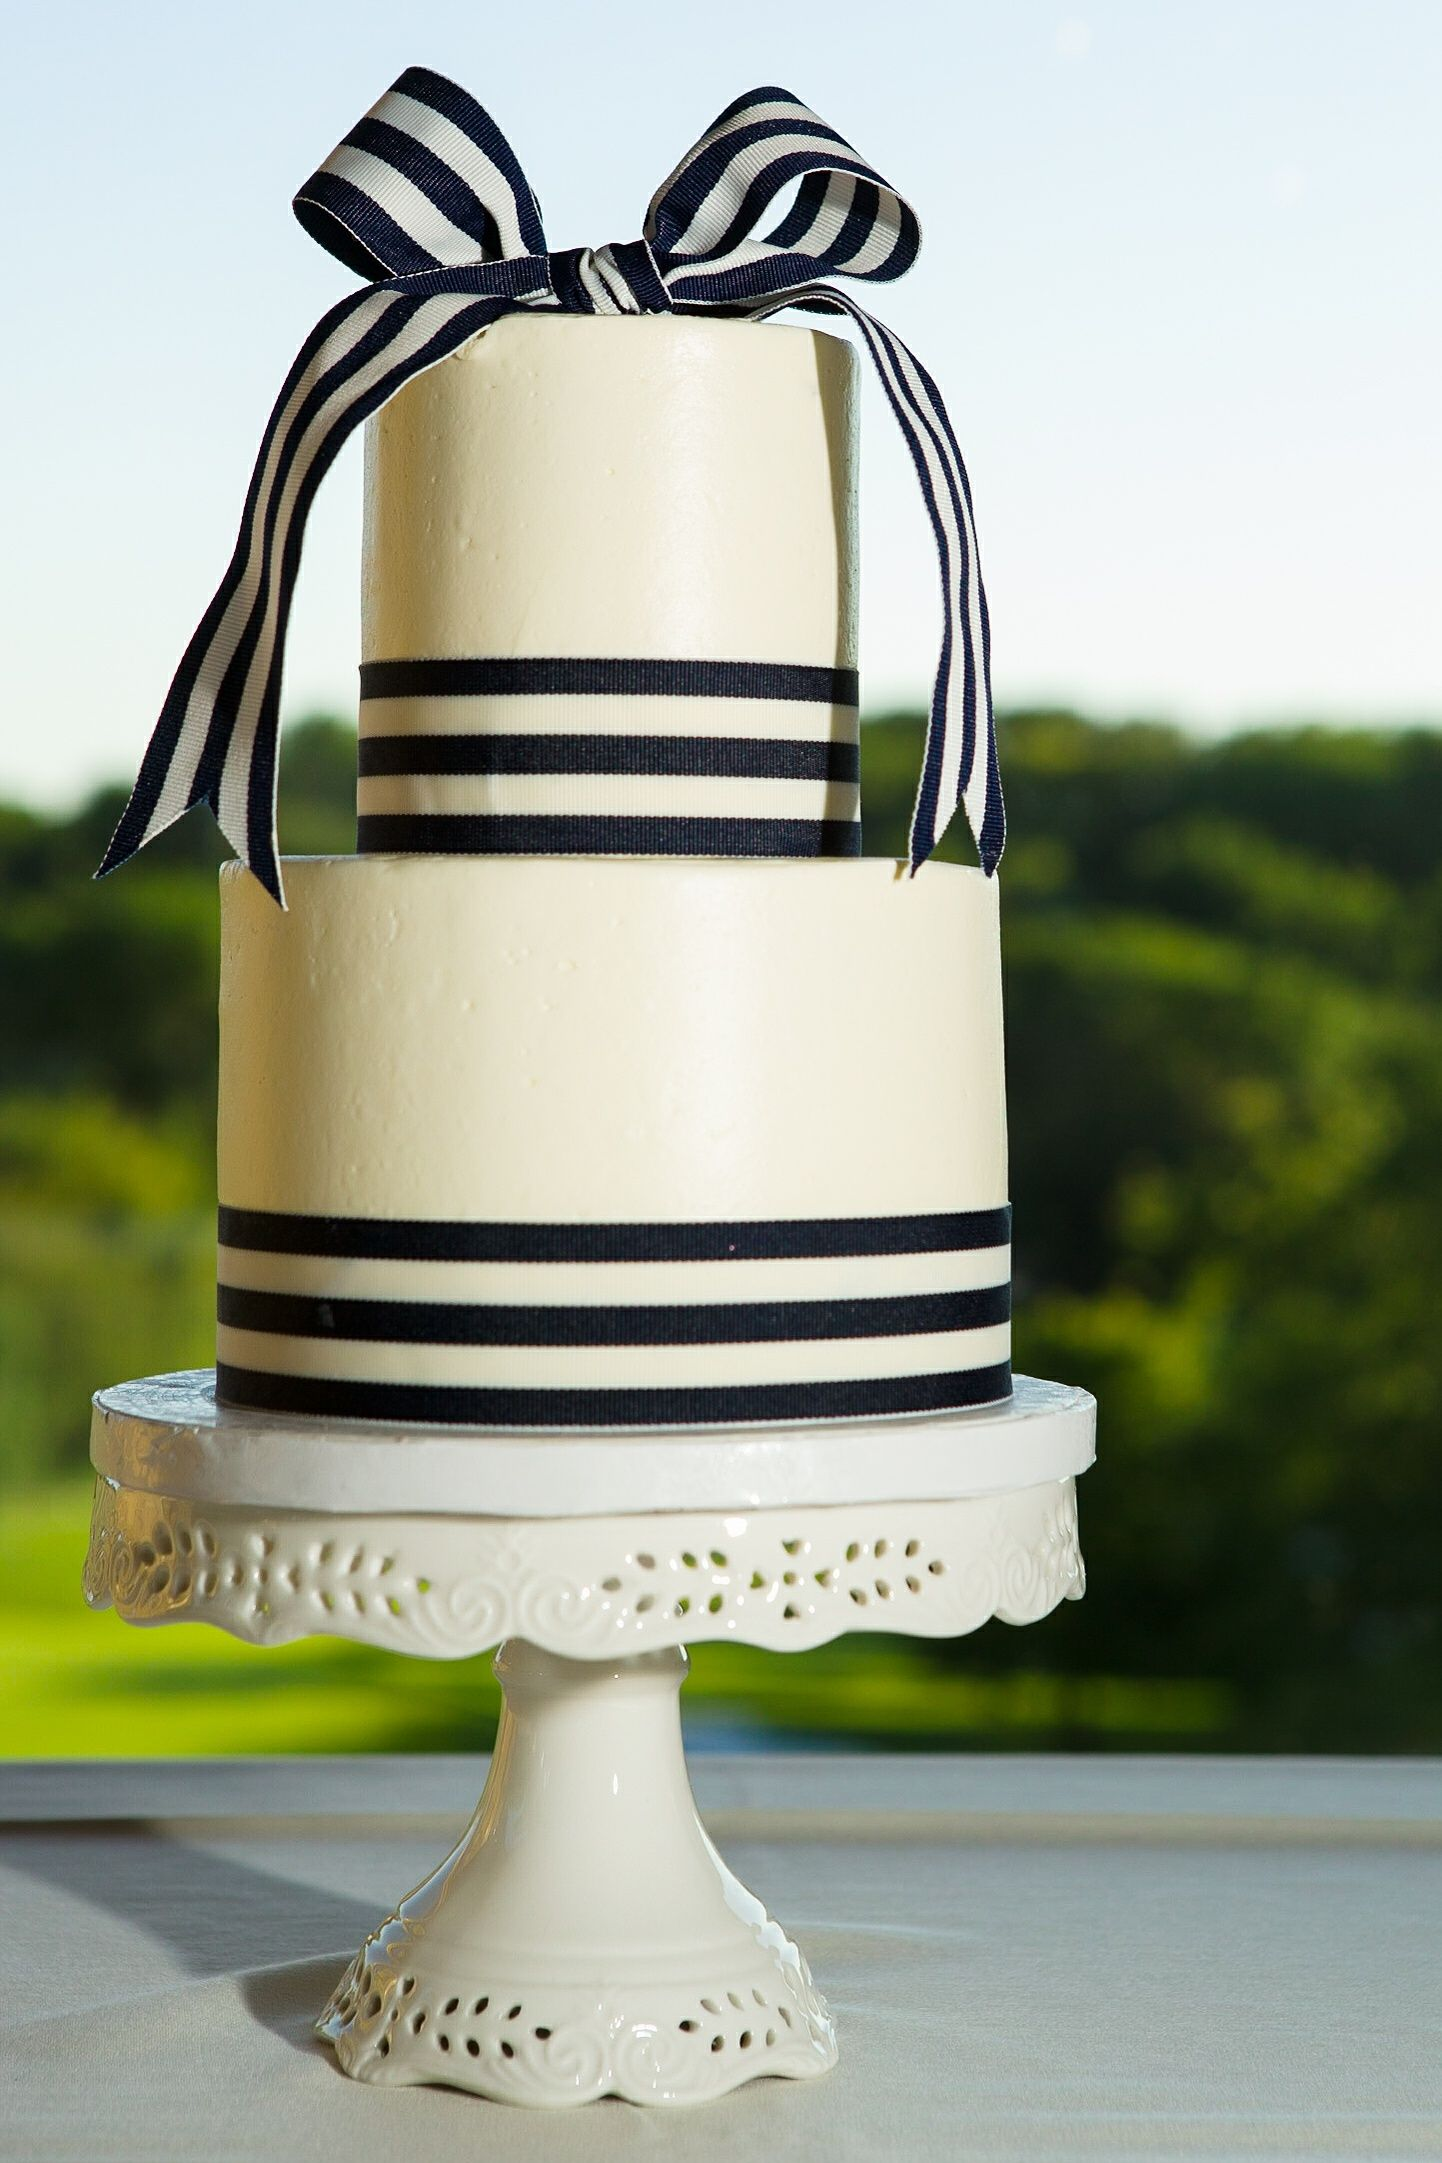 navy and white striped wedding cake; white cake pedestal  overlooking the golf course at Alvamar Country Club in Lawrence, KS Photo: Chris Bendet Photography